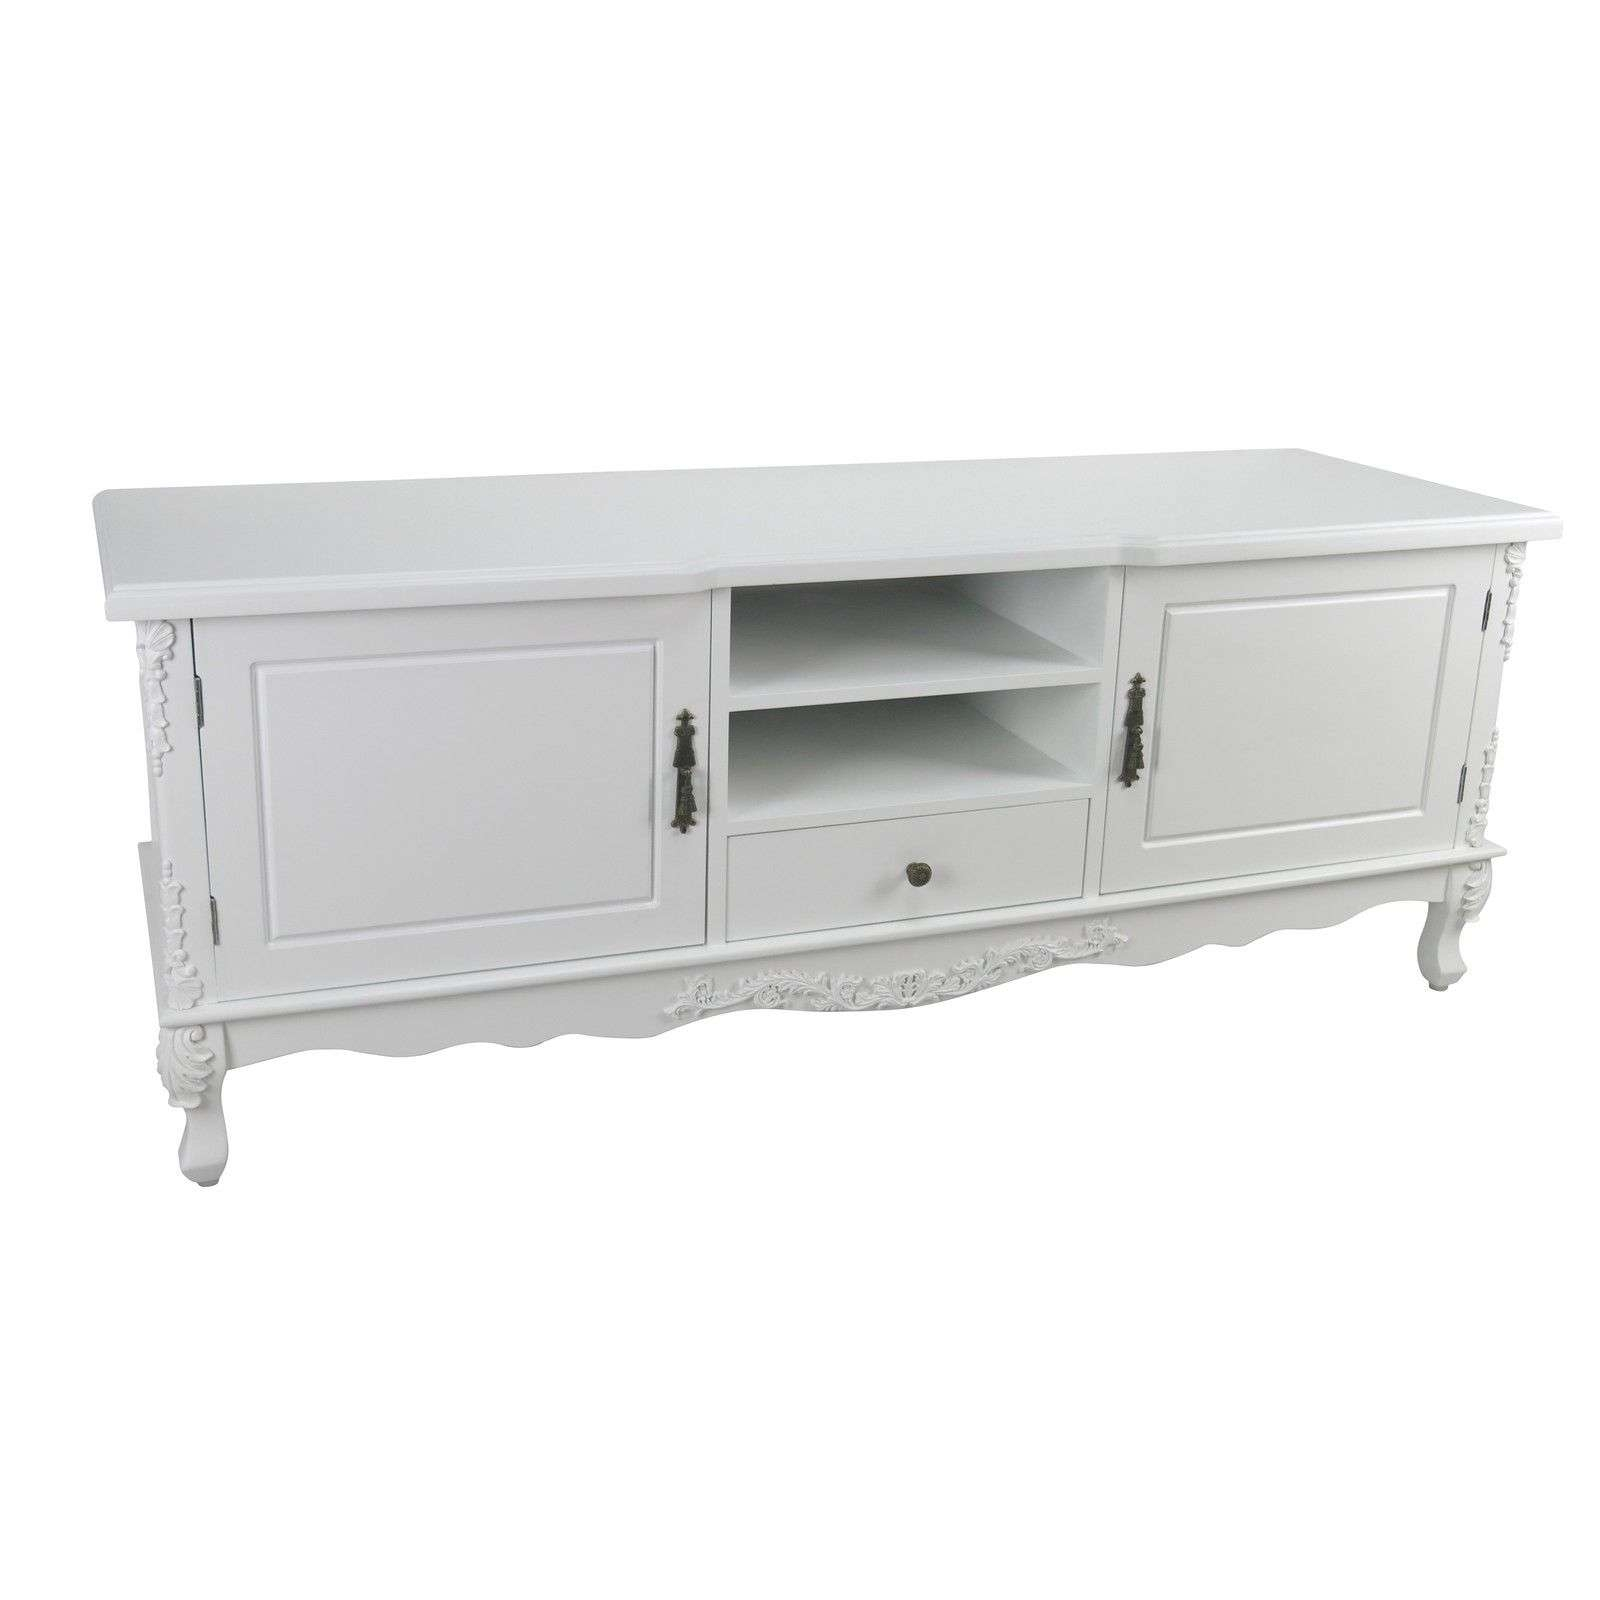 French Style White Large Cabinet Tv Unit Furniture – La Maison Within White Painted Tv Cabinets (View 6 of 20)